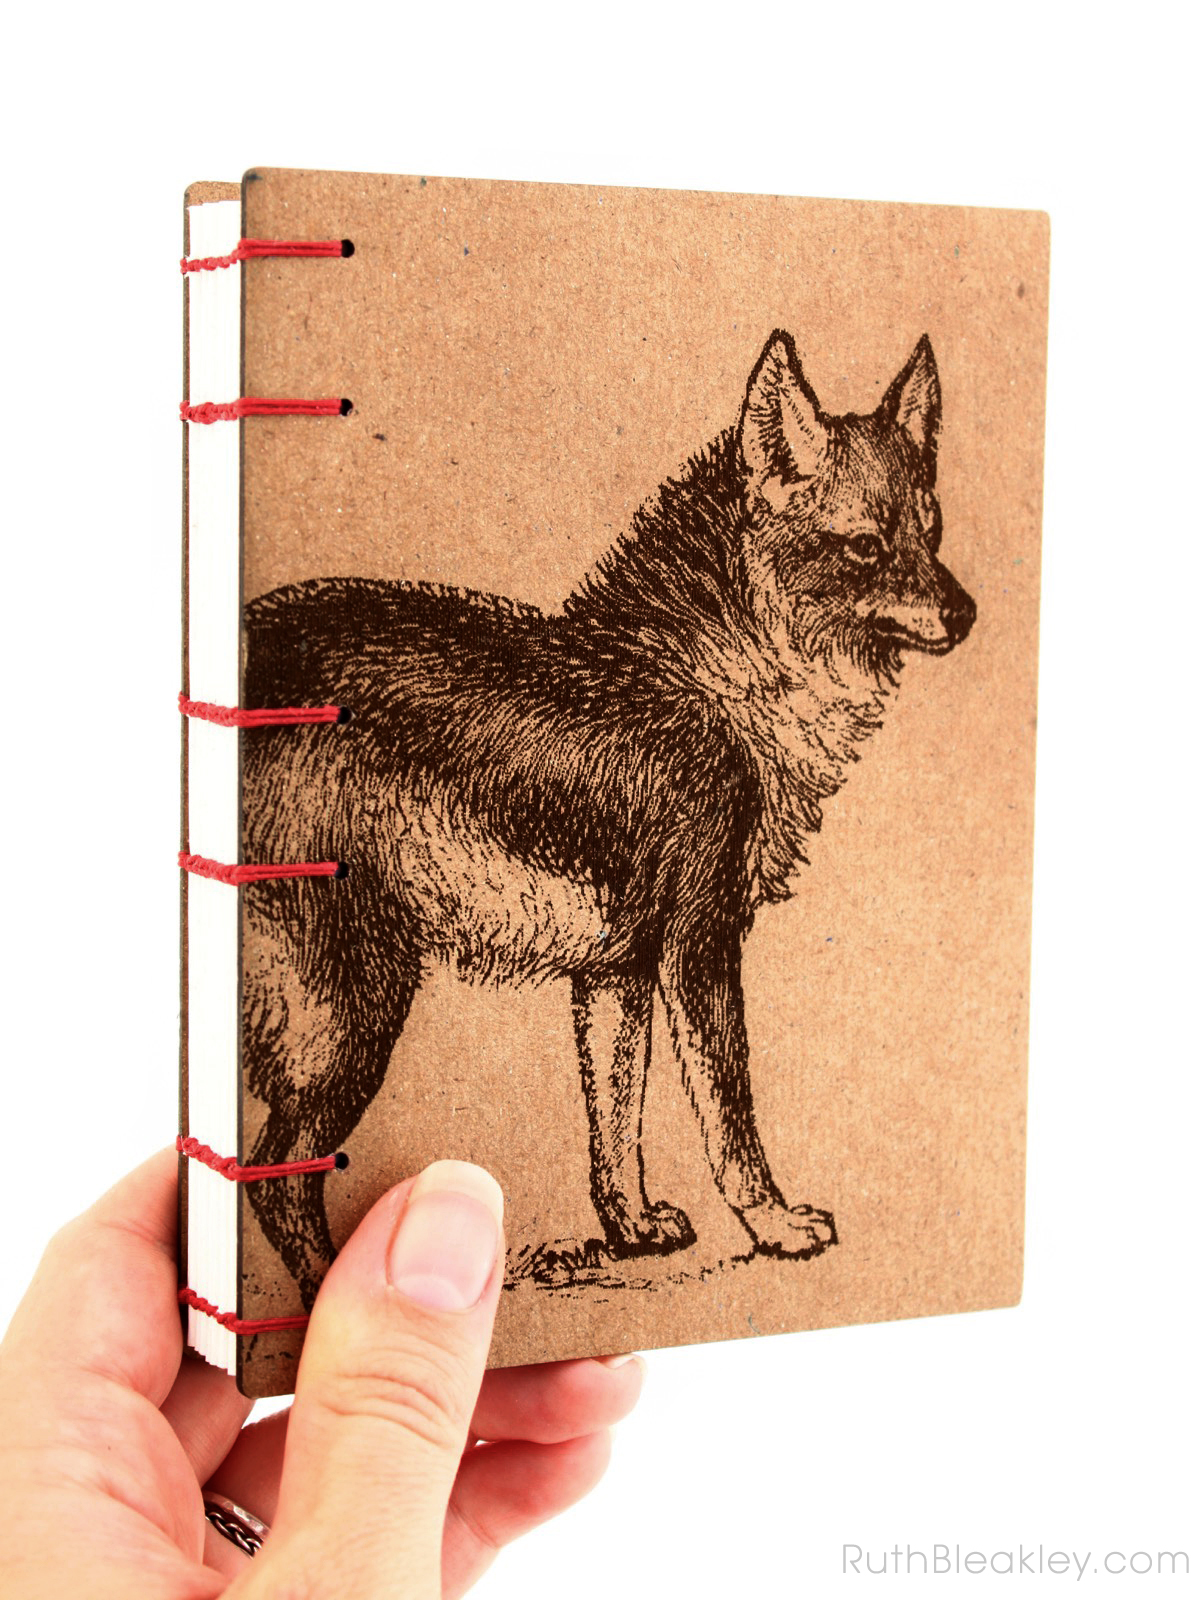 Coyote Wolf Journal handmade by American book artist Ruth Bleakley - 1